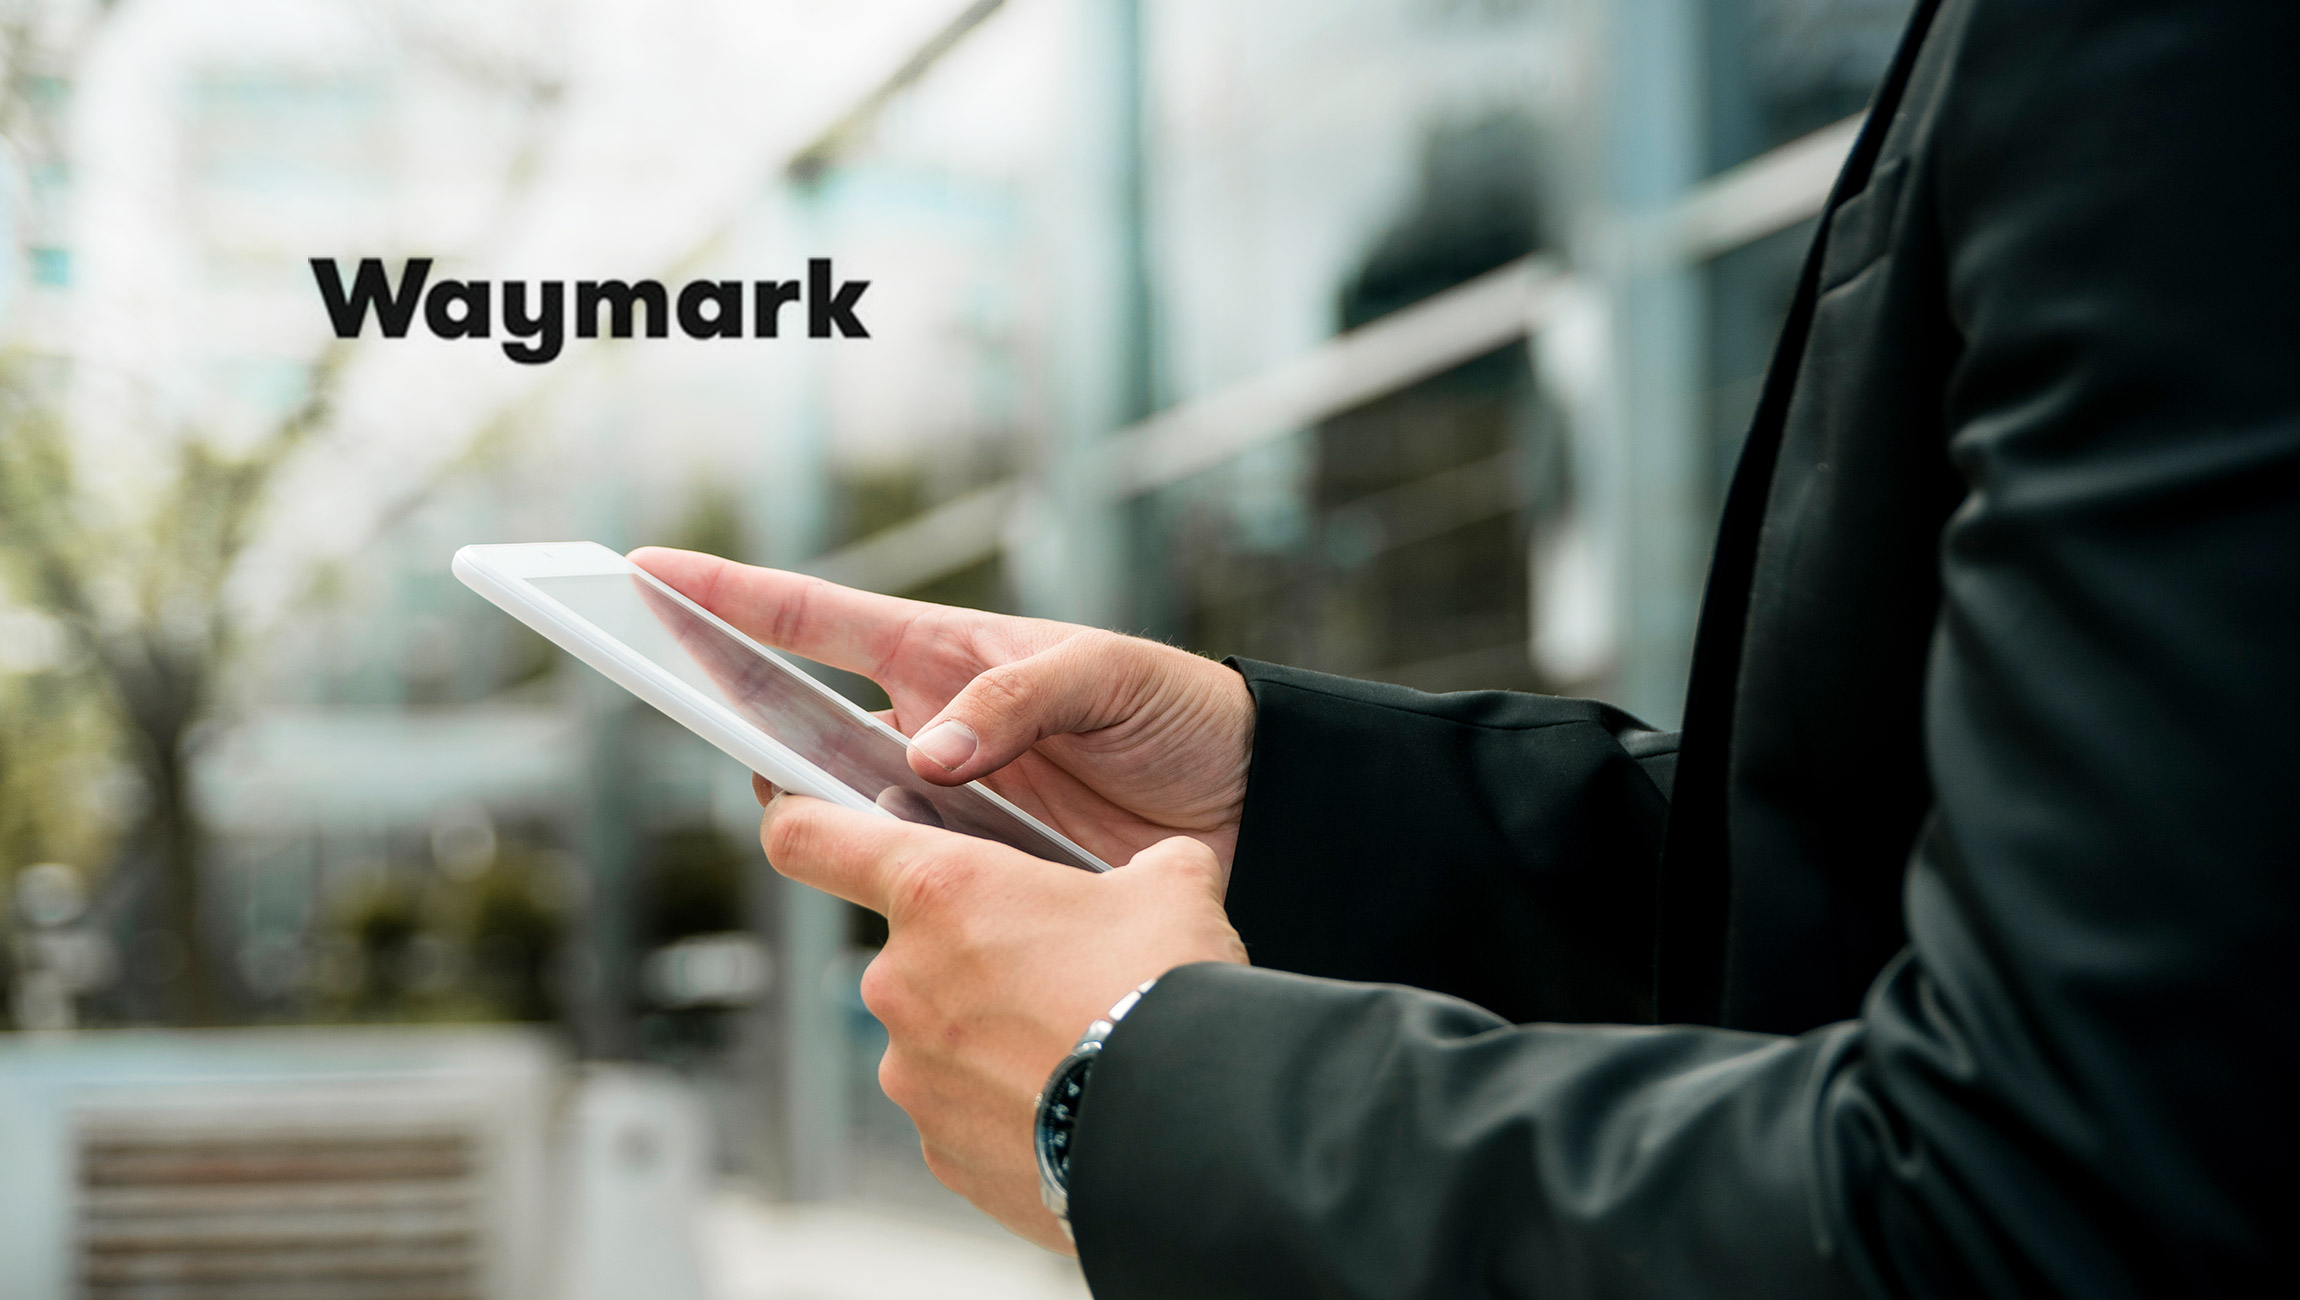 Waymark Appoints Comcast Spotlight Sales Veteran Tom Glaszek as VP of Business Development